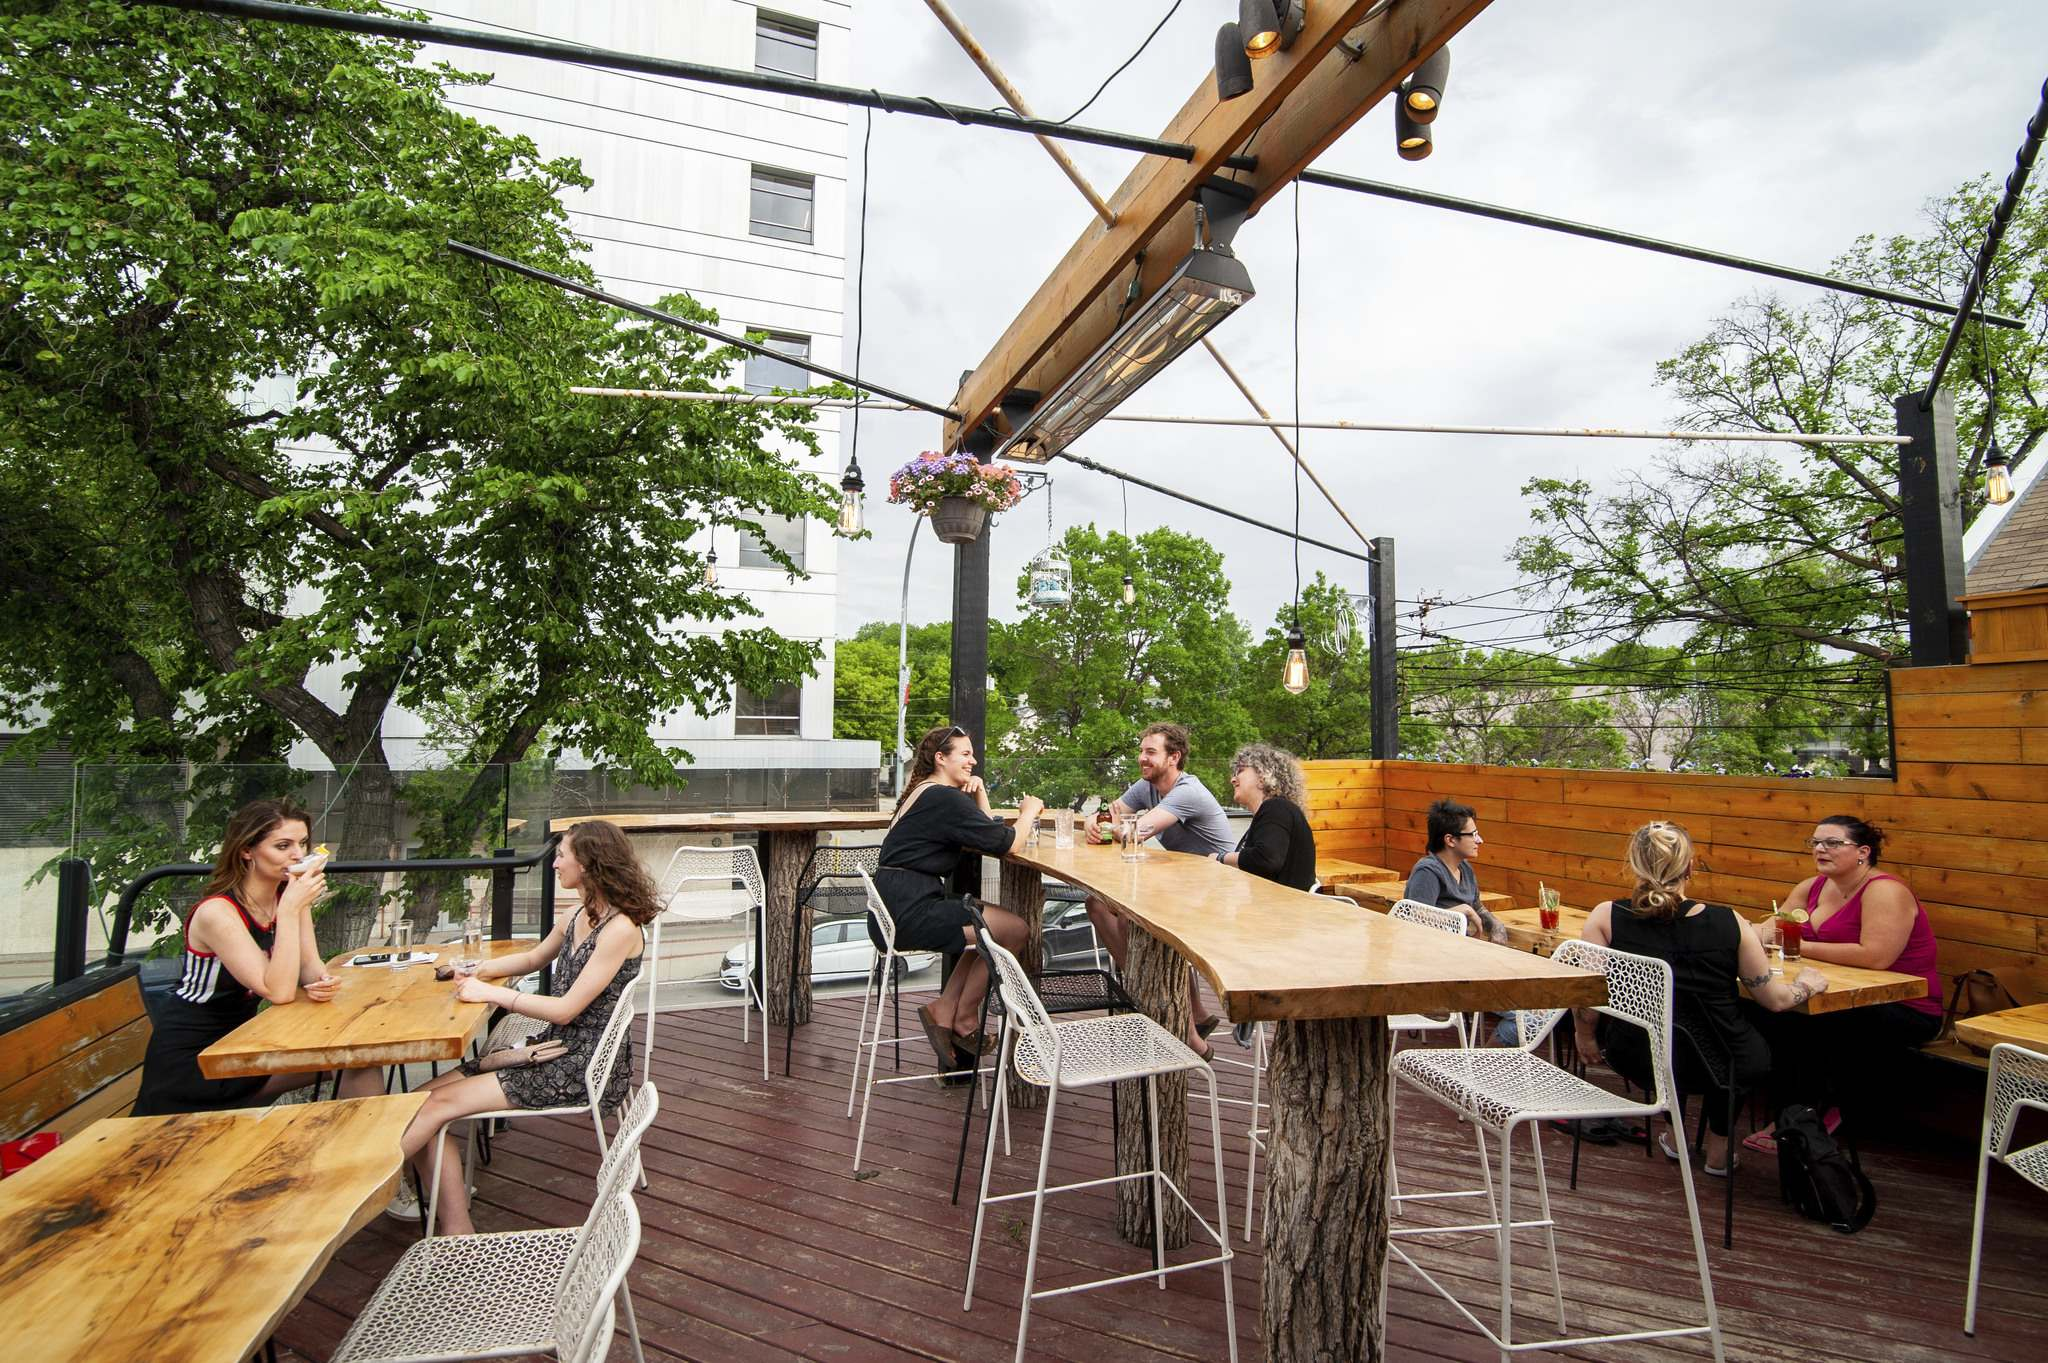 Patio goers take in the sweltering temperatures late last week on The Roost's rustic rooftop. (Mike Sudoma / Winnipeg Free Press)